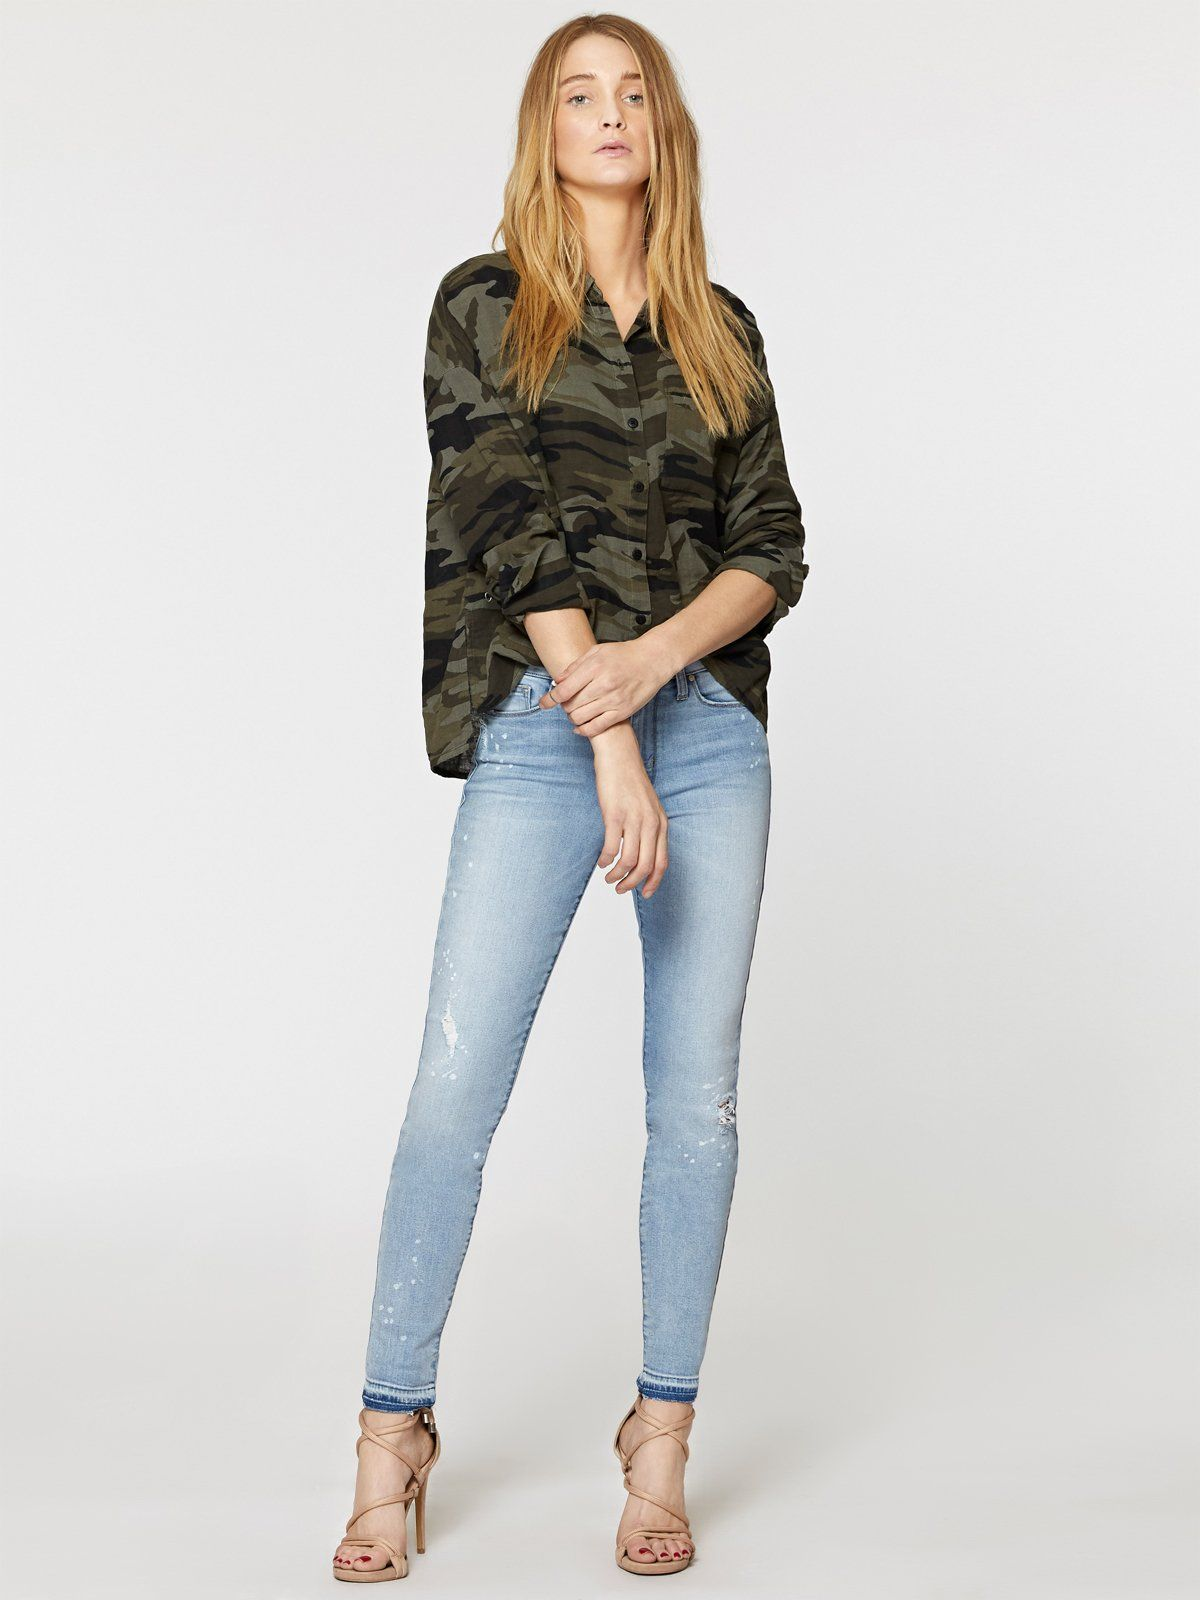 d82cda261da The Ojai Camo T-shirt dress is the ultimate summer staple. Crafted from  soft Cotton